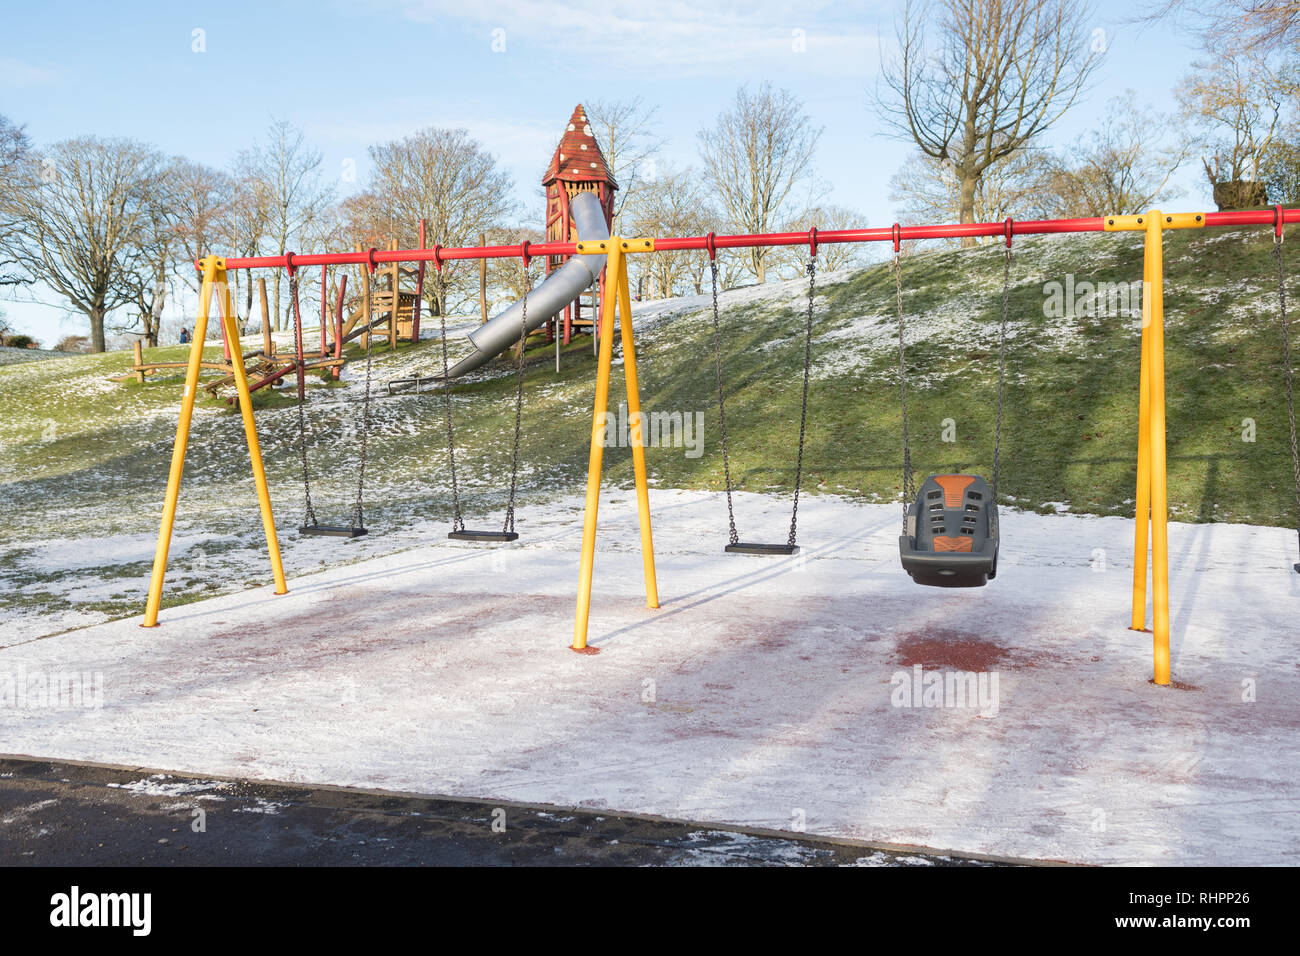 disabled access swing seat in children's play park area in Duthie Park, Aberdeen, Scotland, UK - Stock Image